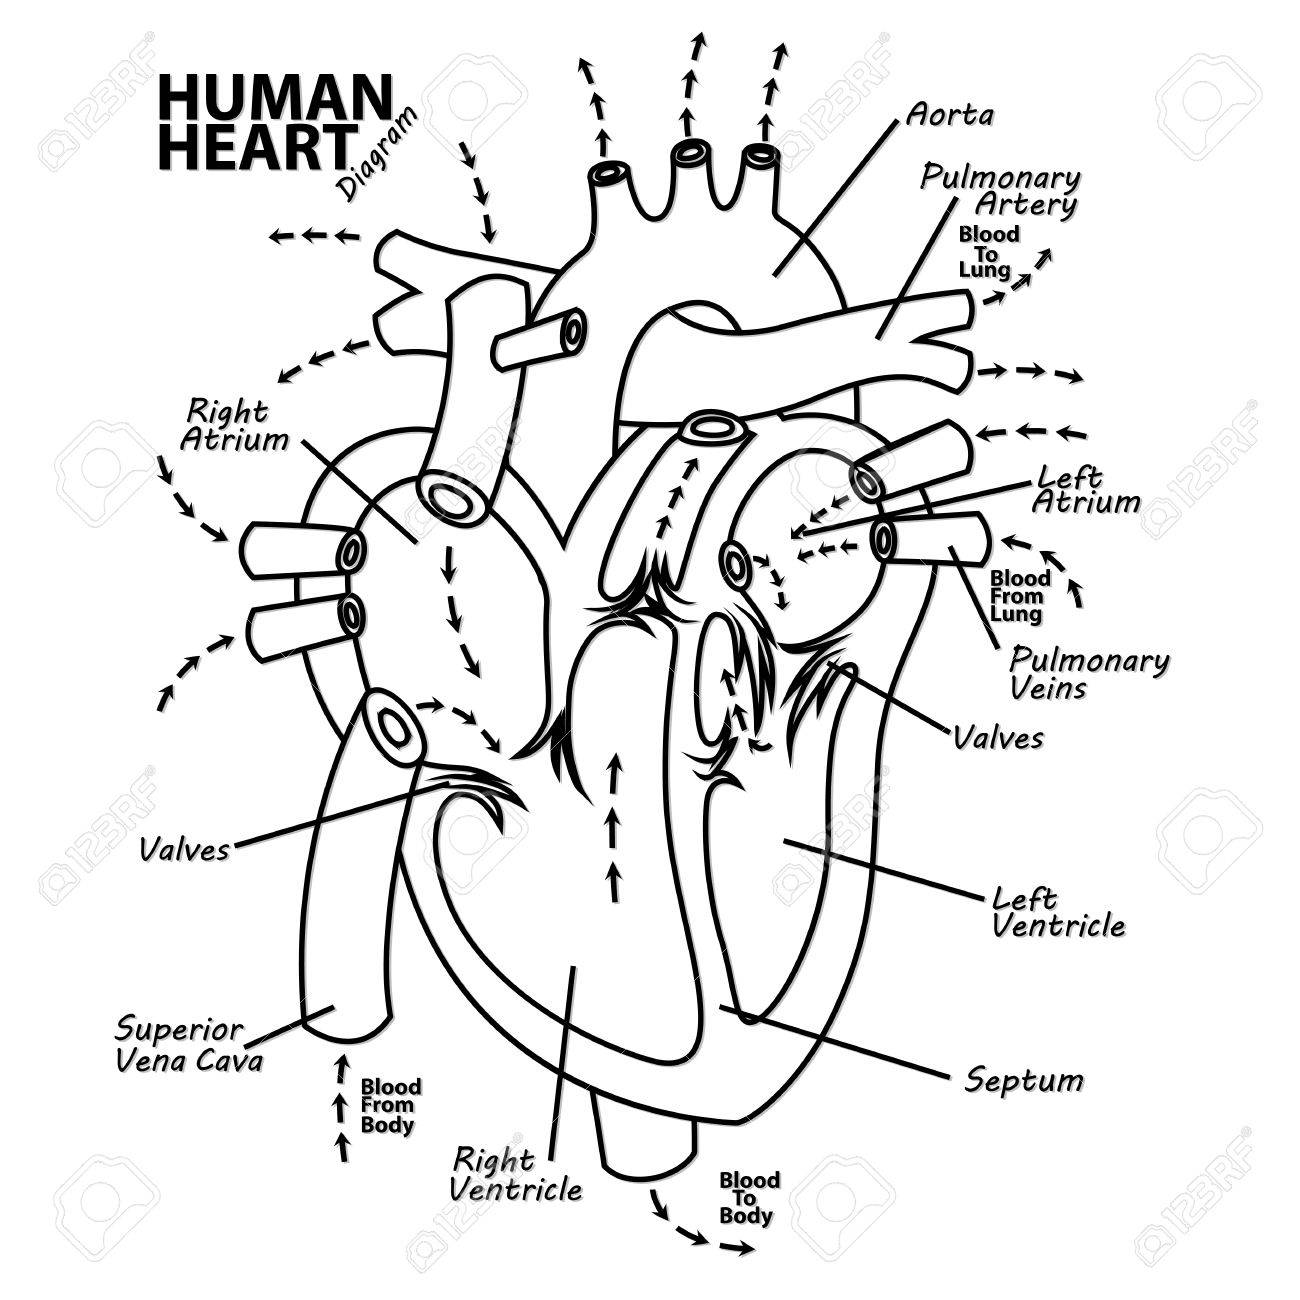 Diagram heart left pressure isolated human aortic normal diagram heart left pressure isolated human aortic normal ccuart Image collections